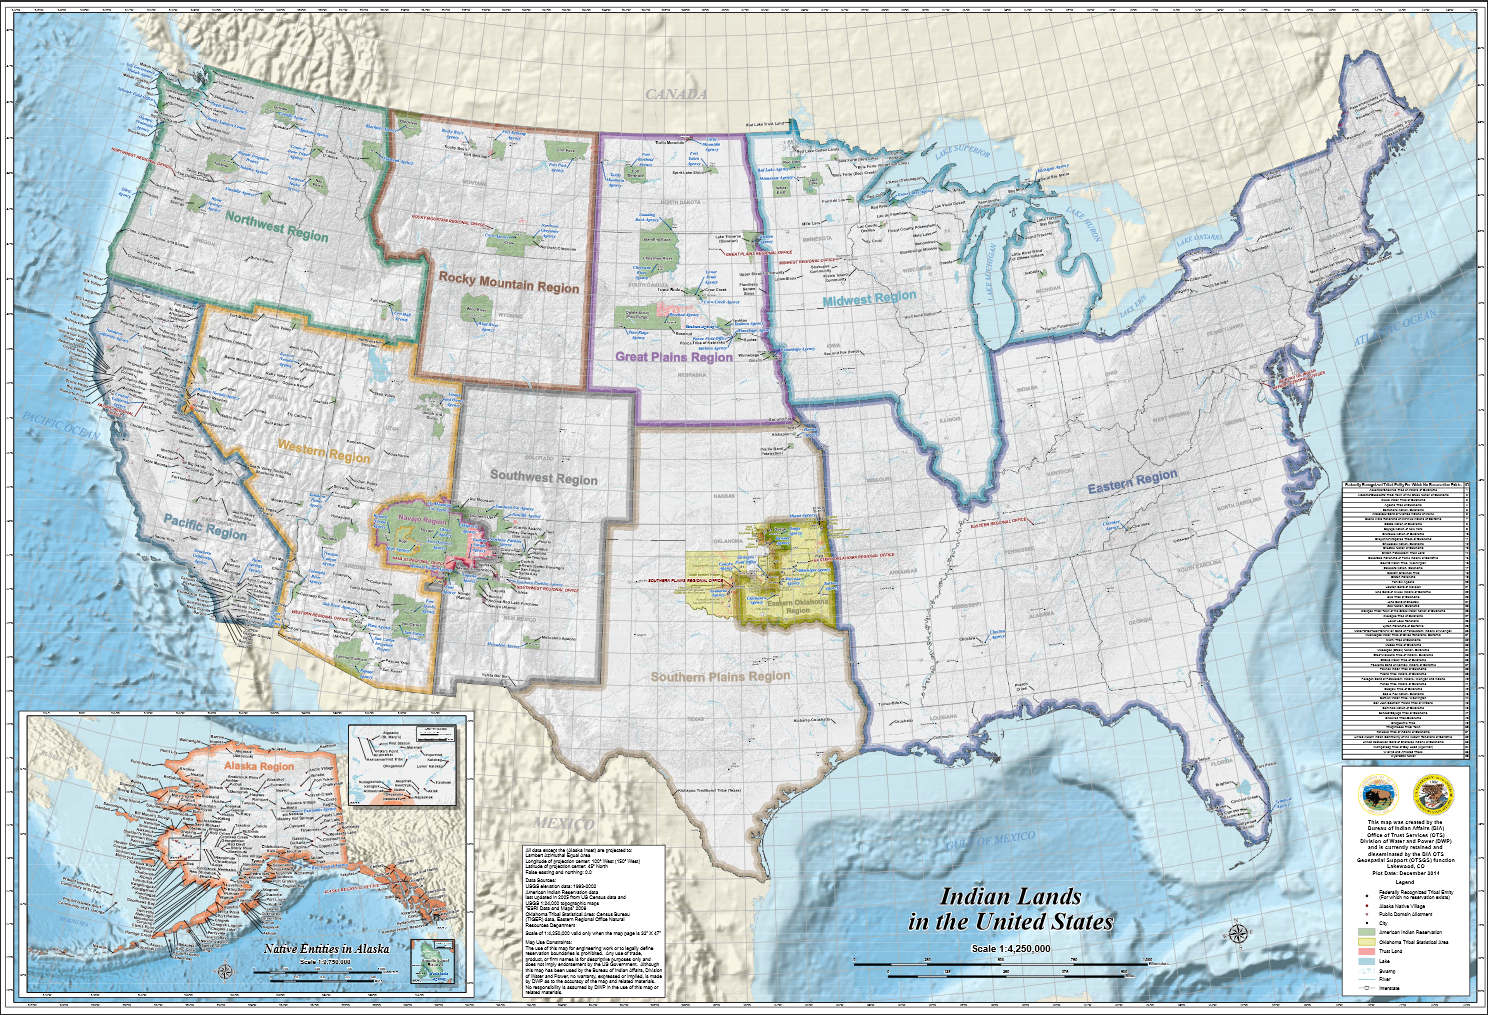 Tribal Nations Maps - Data.gov on indian map of north america, india vs united states, enlarged map of united states, map of georgia united states, casinos in united states, indian hogan, india and united states, map of eastern half of united states, full page map of united states, large map of united states, indian territory in the 1800s, recognized tribes united states, indian map of the country, indian south carolina map, casino directory united states, king of united states, indian adobe, indian us map, oklahoma united states, tribal map of united states,